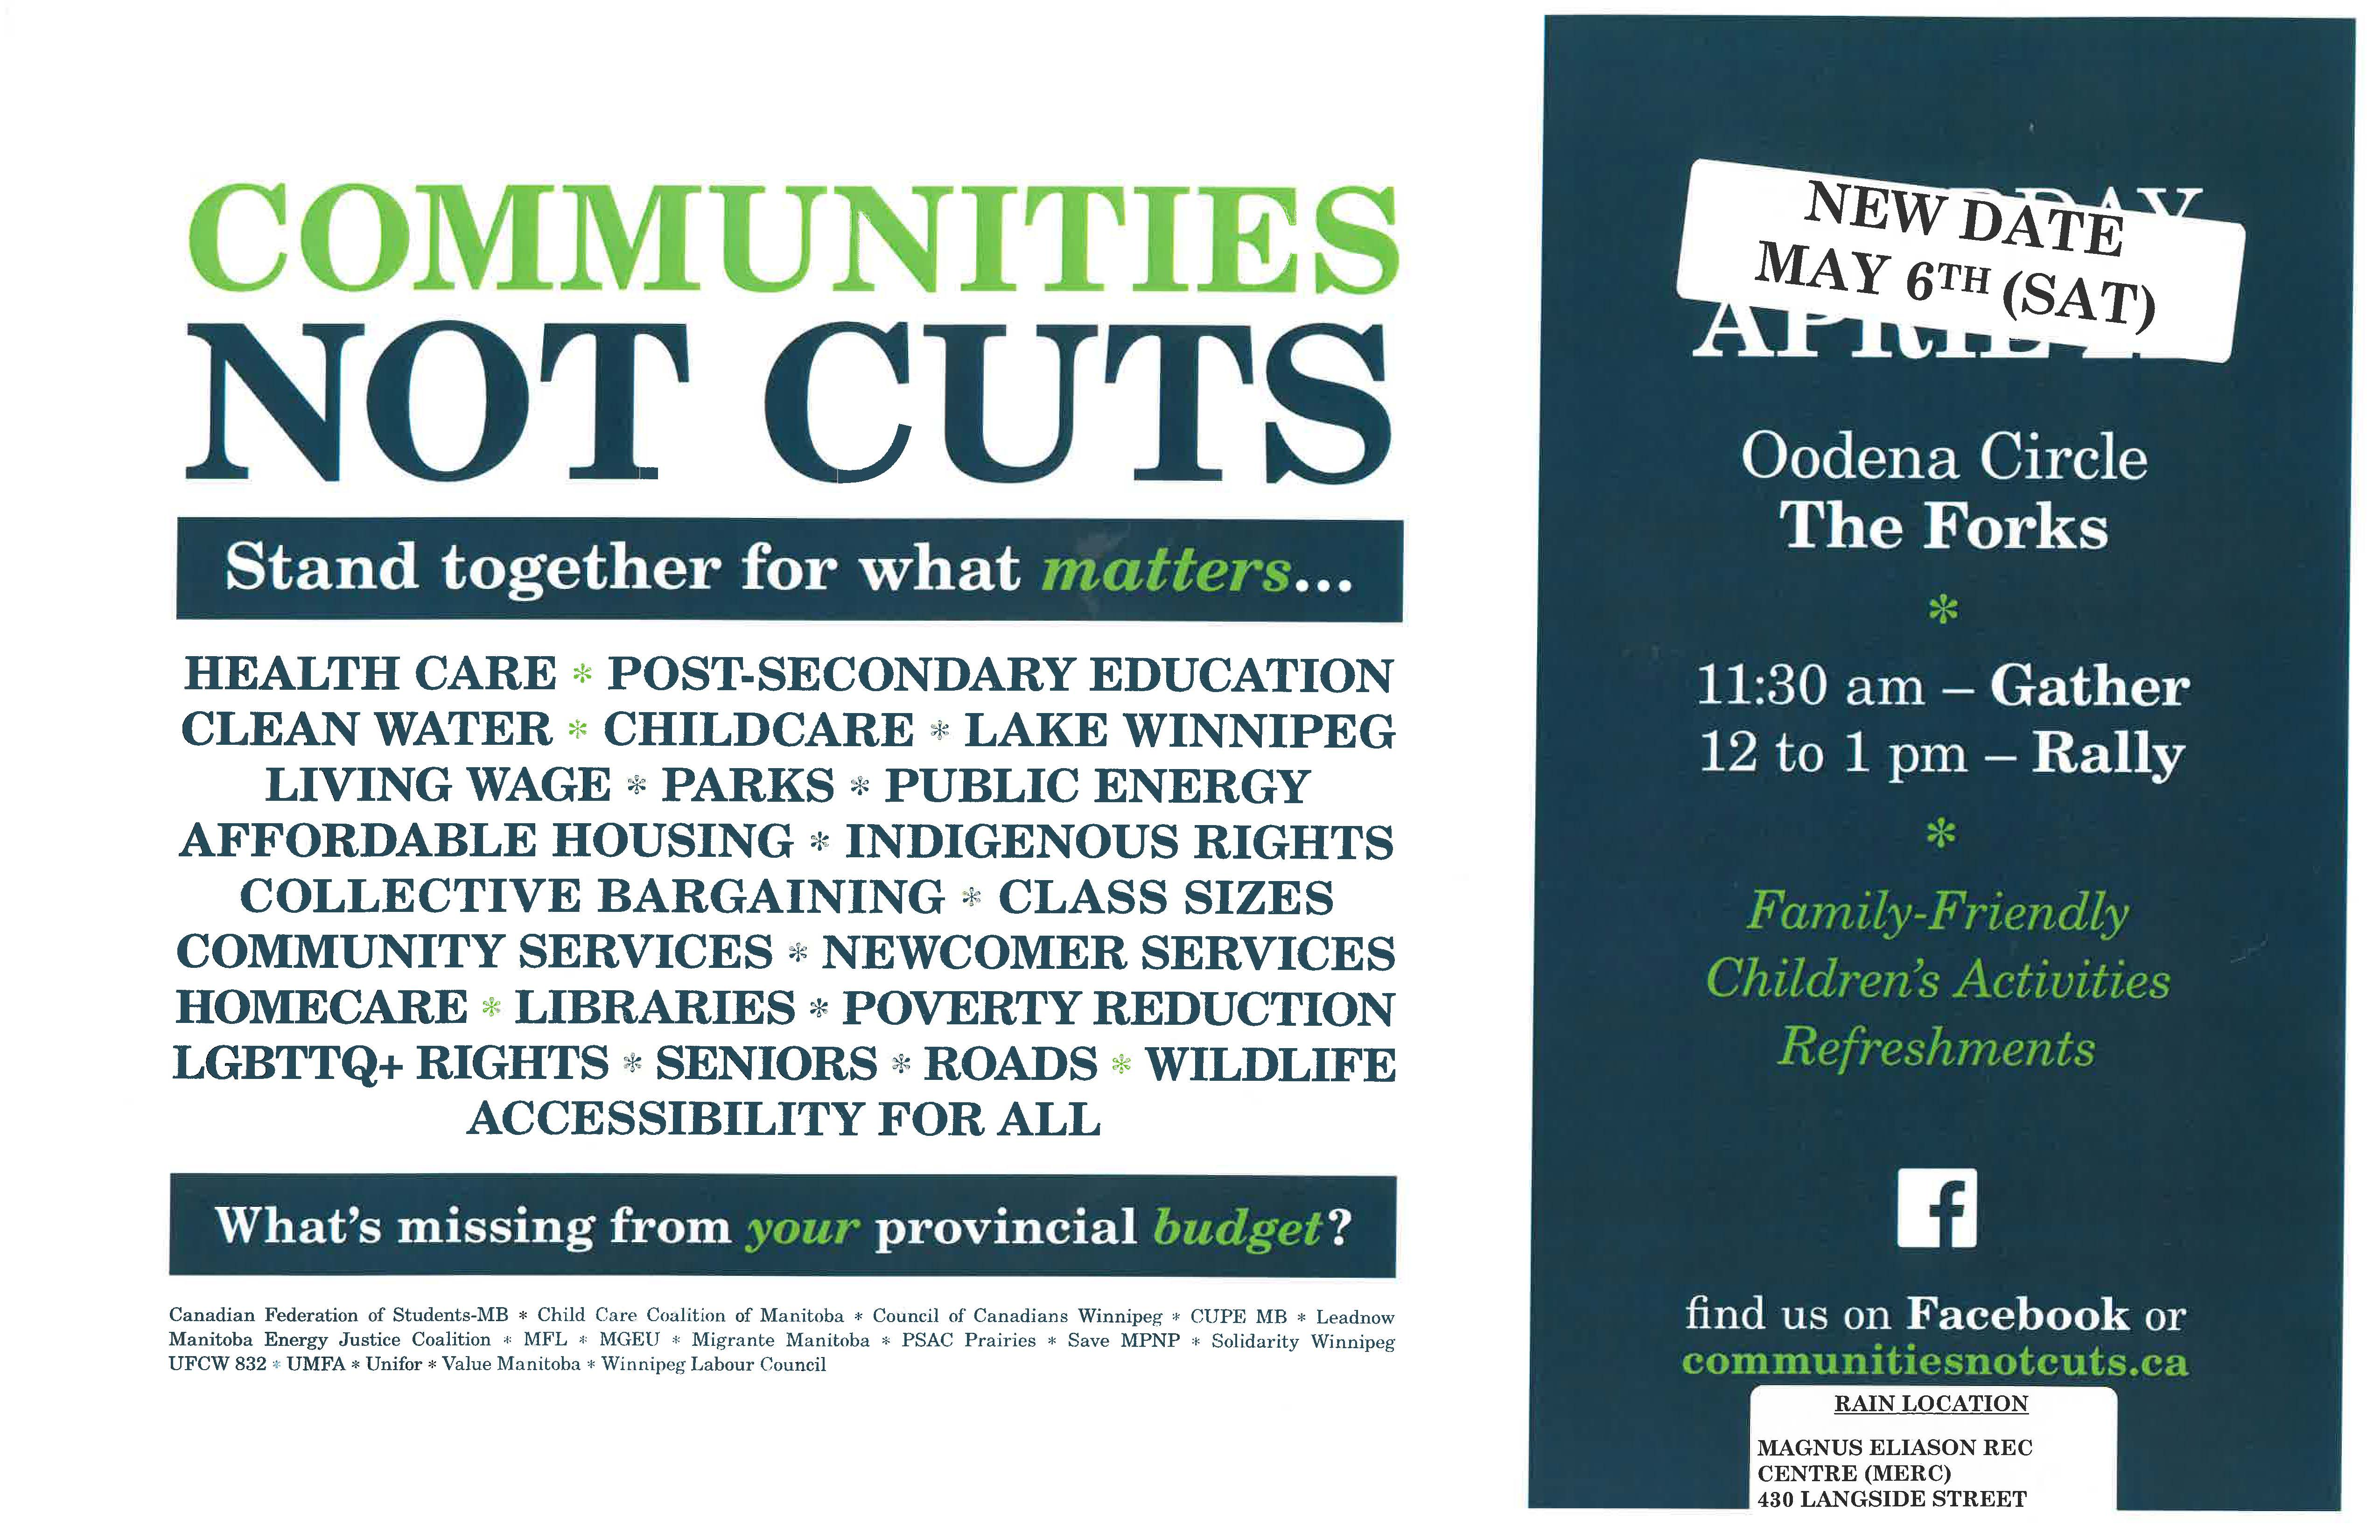 Communities Not Cuts Rally Stand Together For What Matters Cupe 998